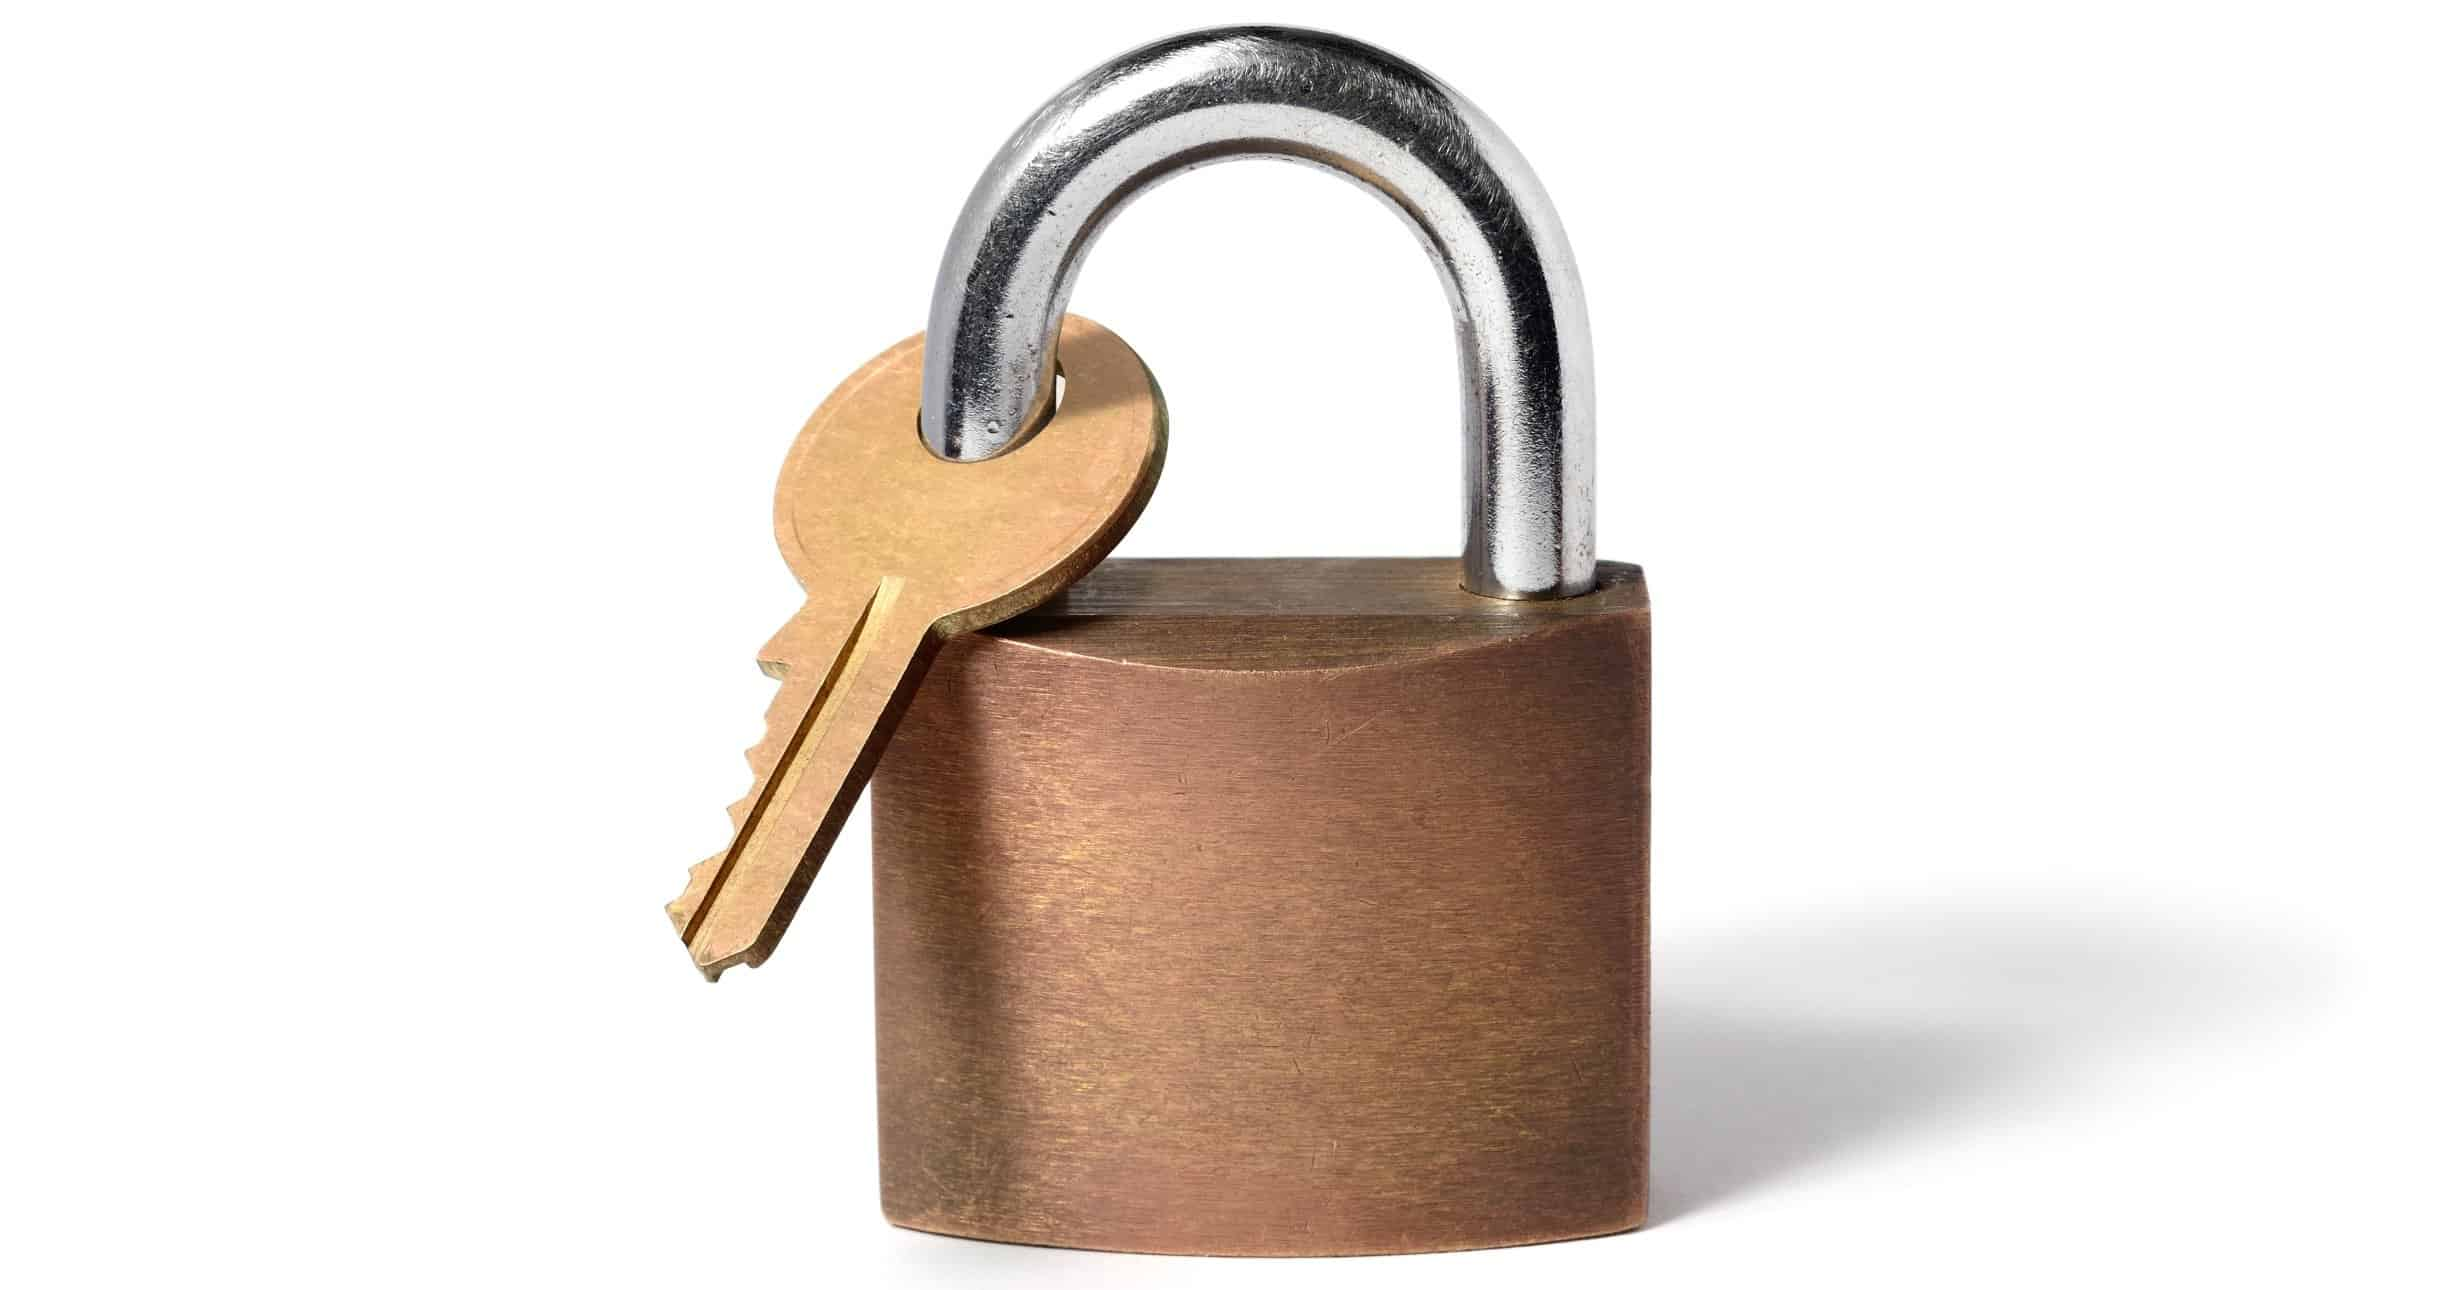 Picture of padlock with its key locked with the padlock. This is an image of self-sabotage.